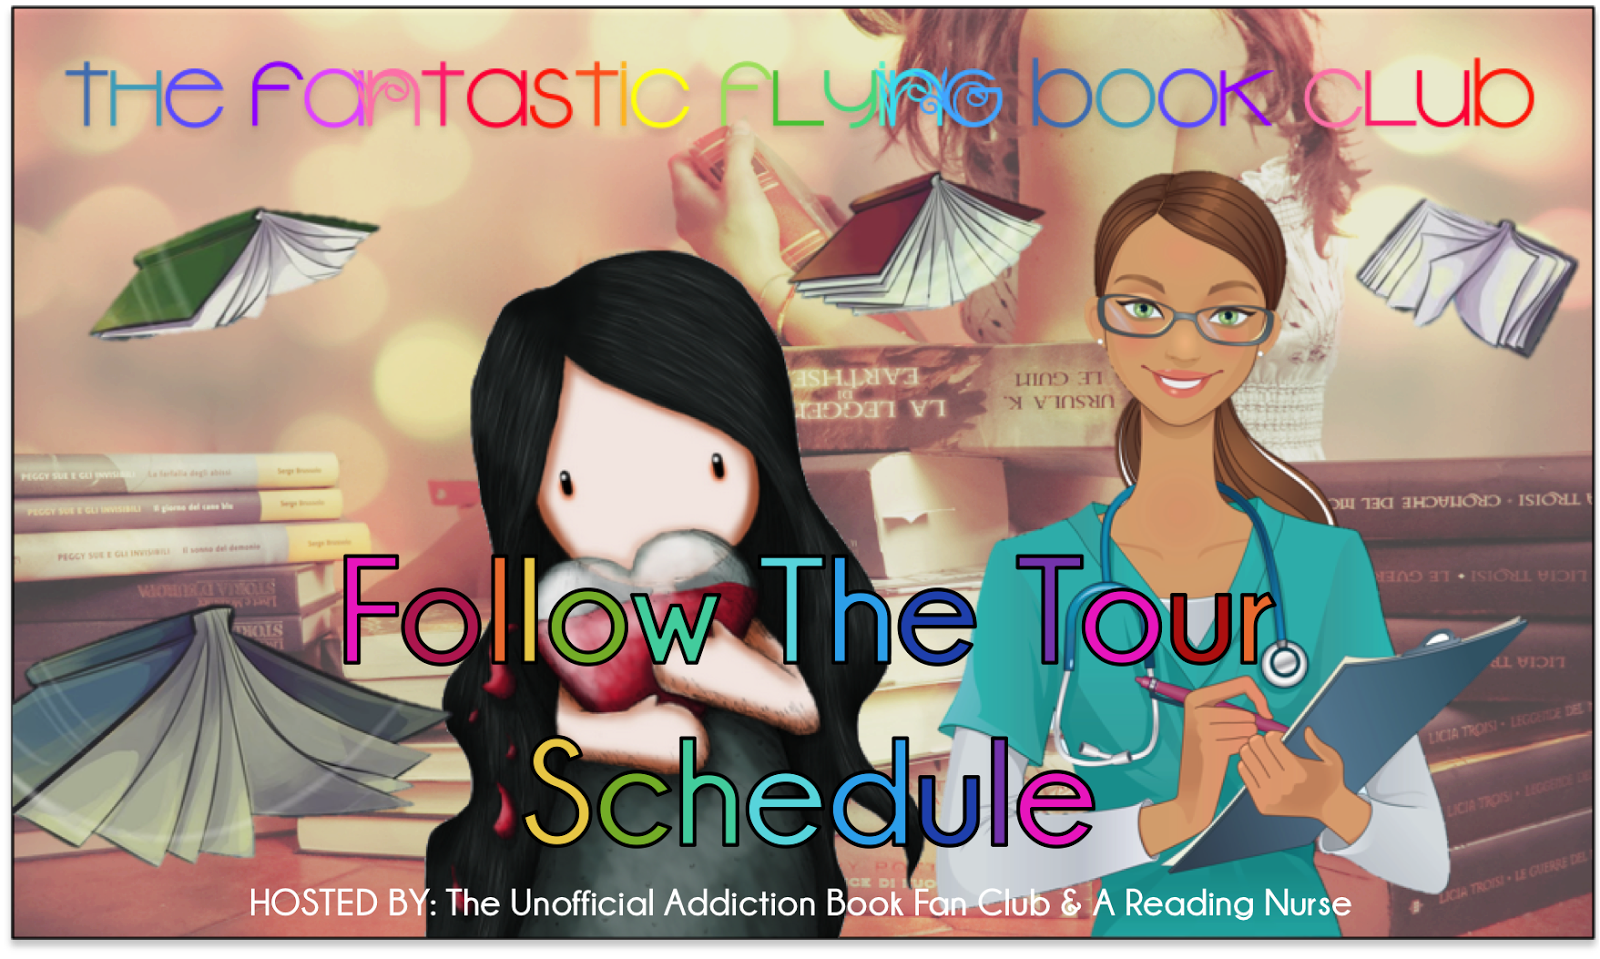 http://theunofficialaddictionbookfanclub.blogspot.com/2014/06/ffbc-blog-tour-unravel-linked-2-by.html